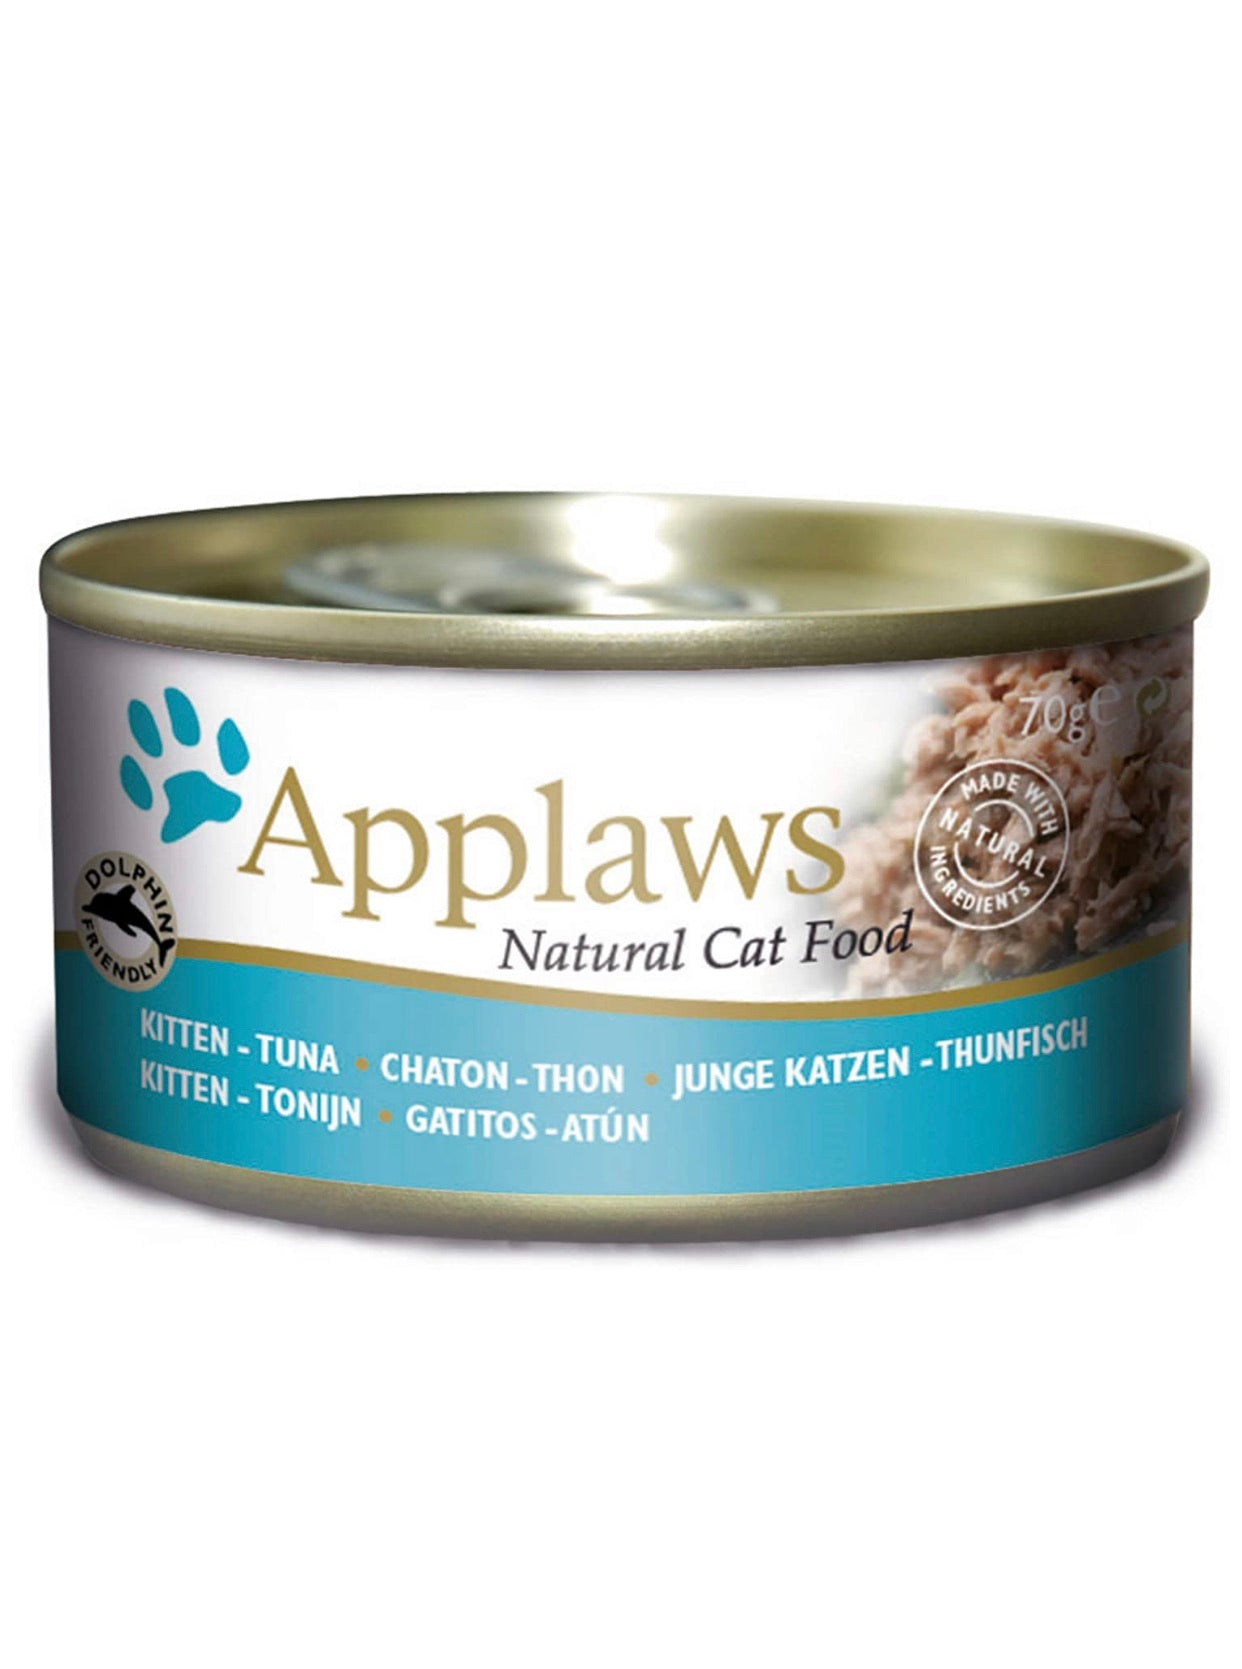 Applaws Natural Kitten Tins Tuna